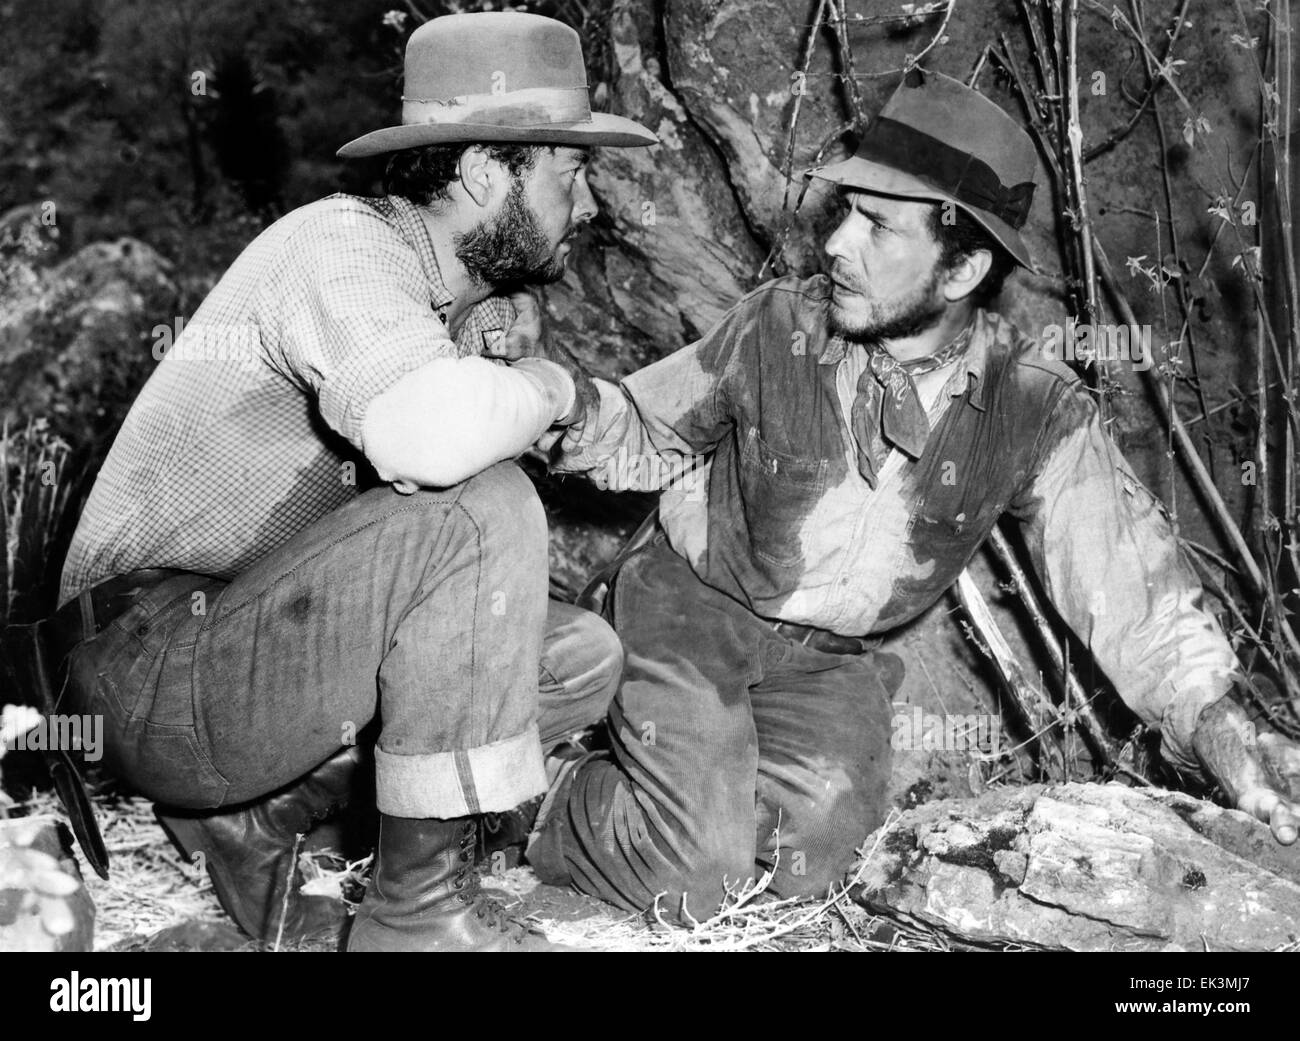 Tim Holt, Humphrey Bogart, on-set of the Film 'The Treasure of the Sierra Madre', 1948 - Stock Image